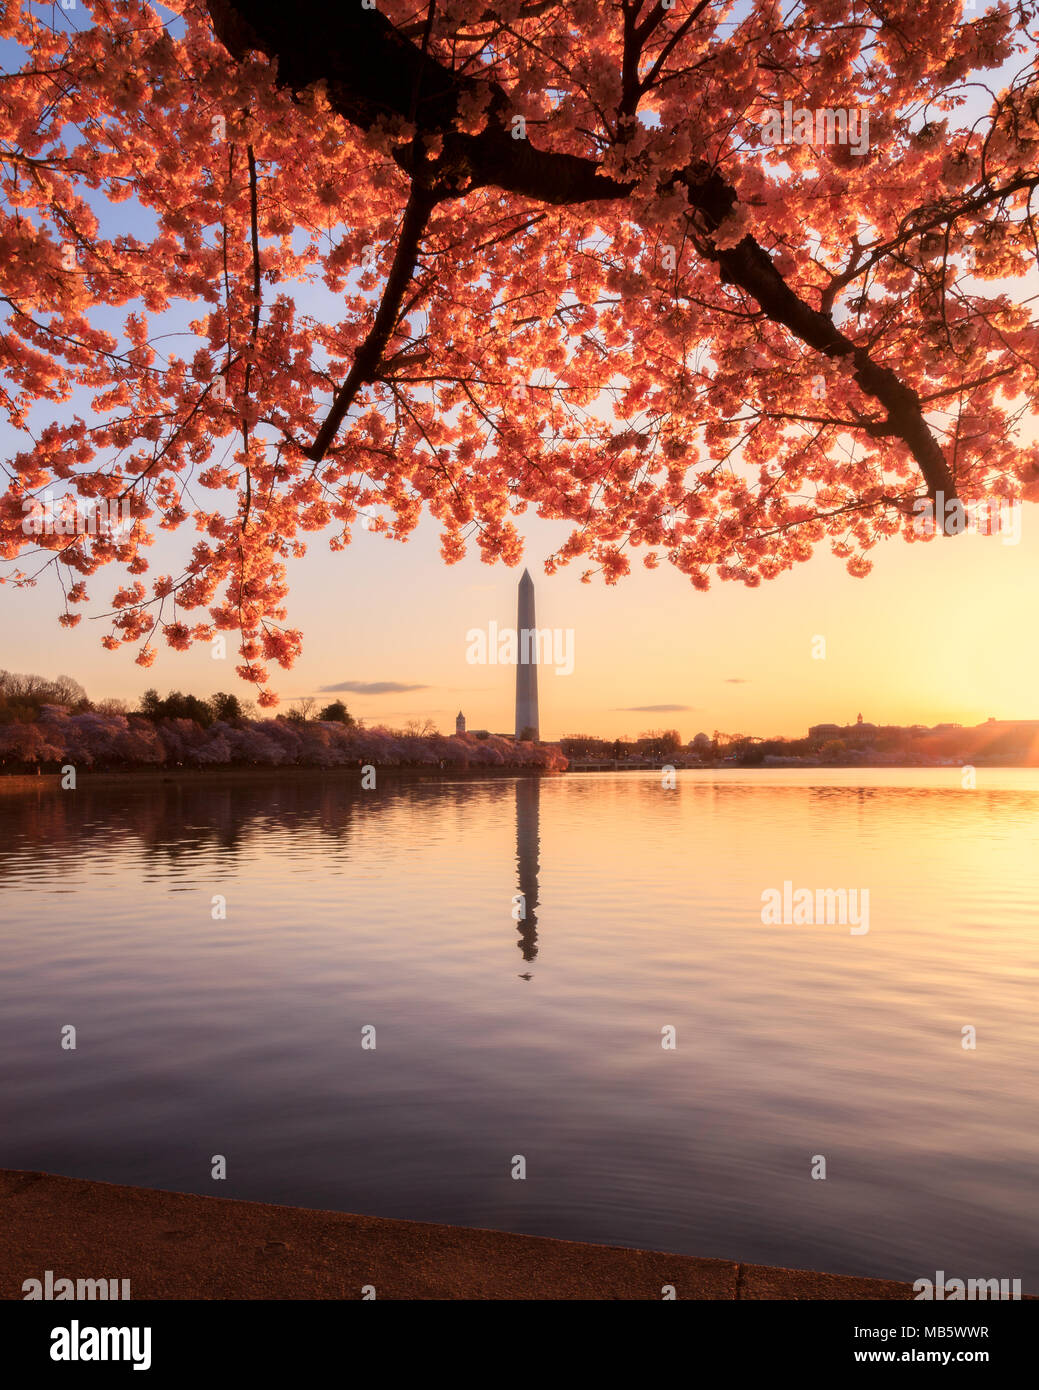 Sunrise at the tidal basin during the cherry blossom bloom - Stock Image